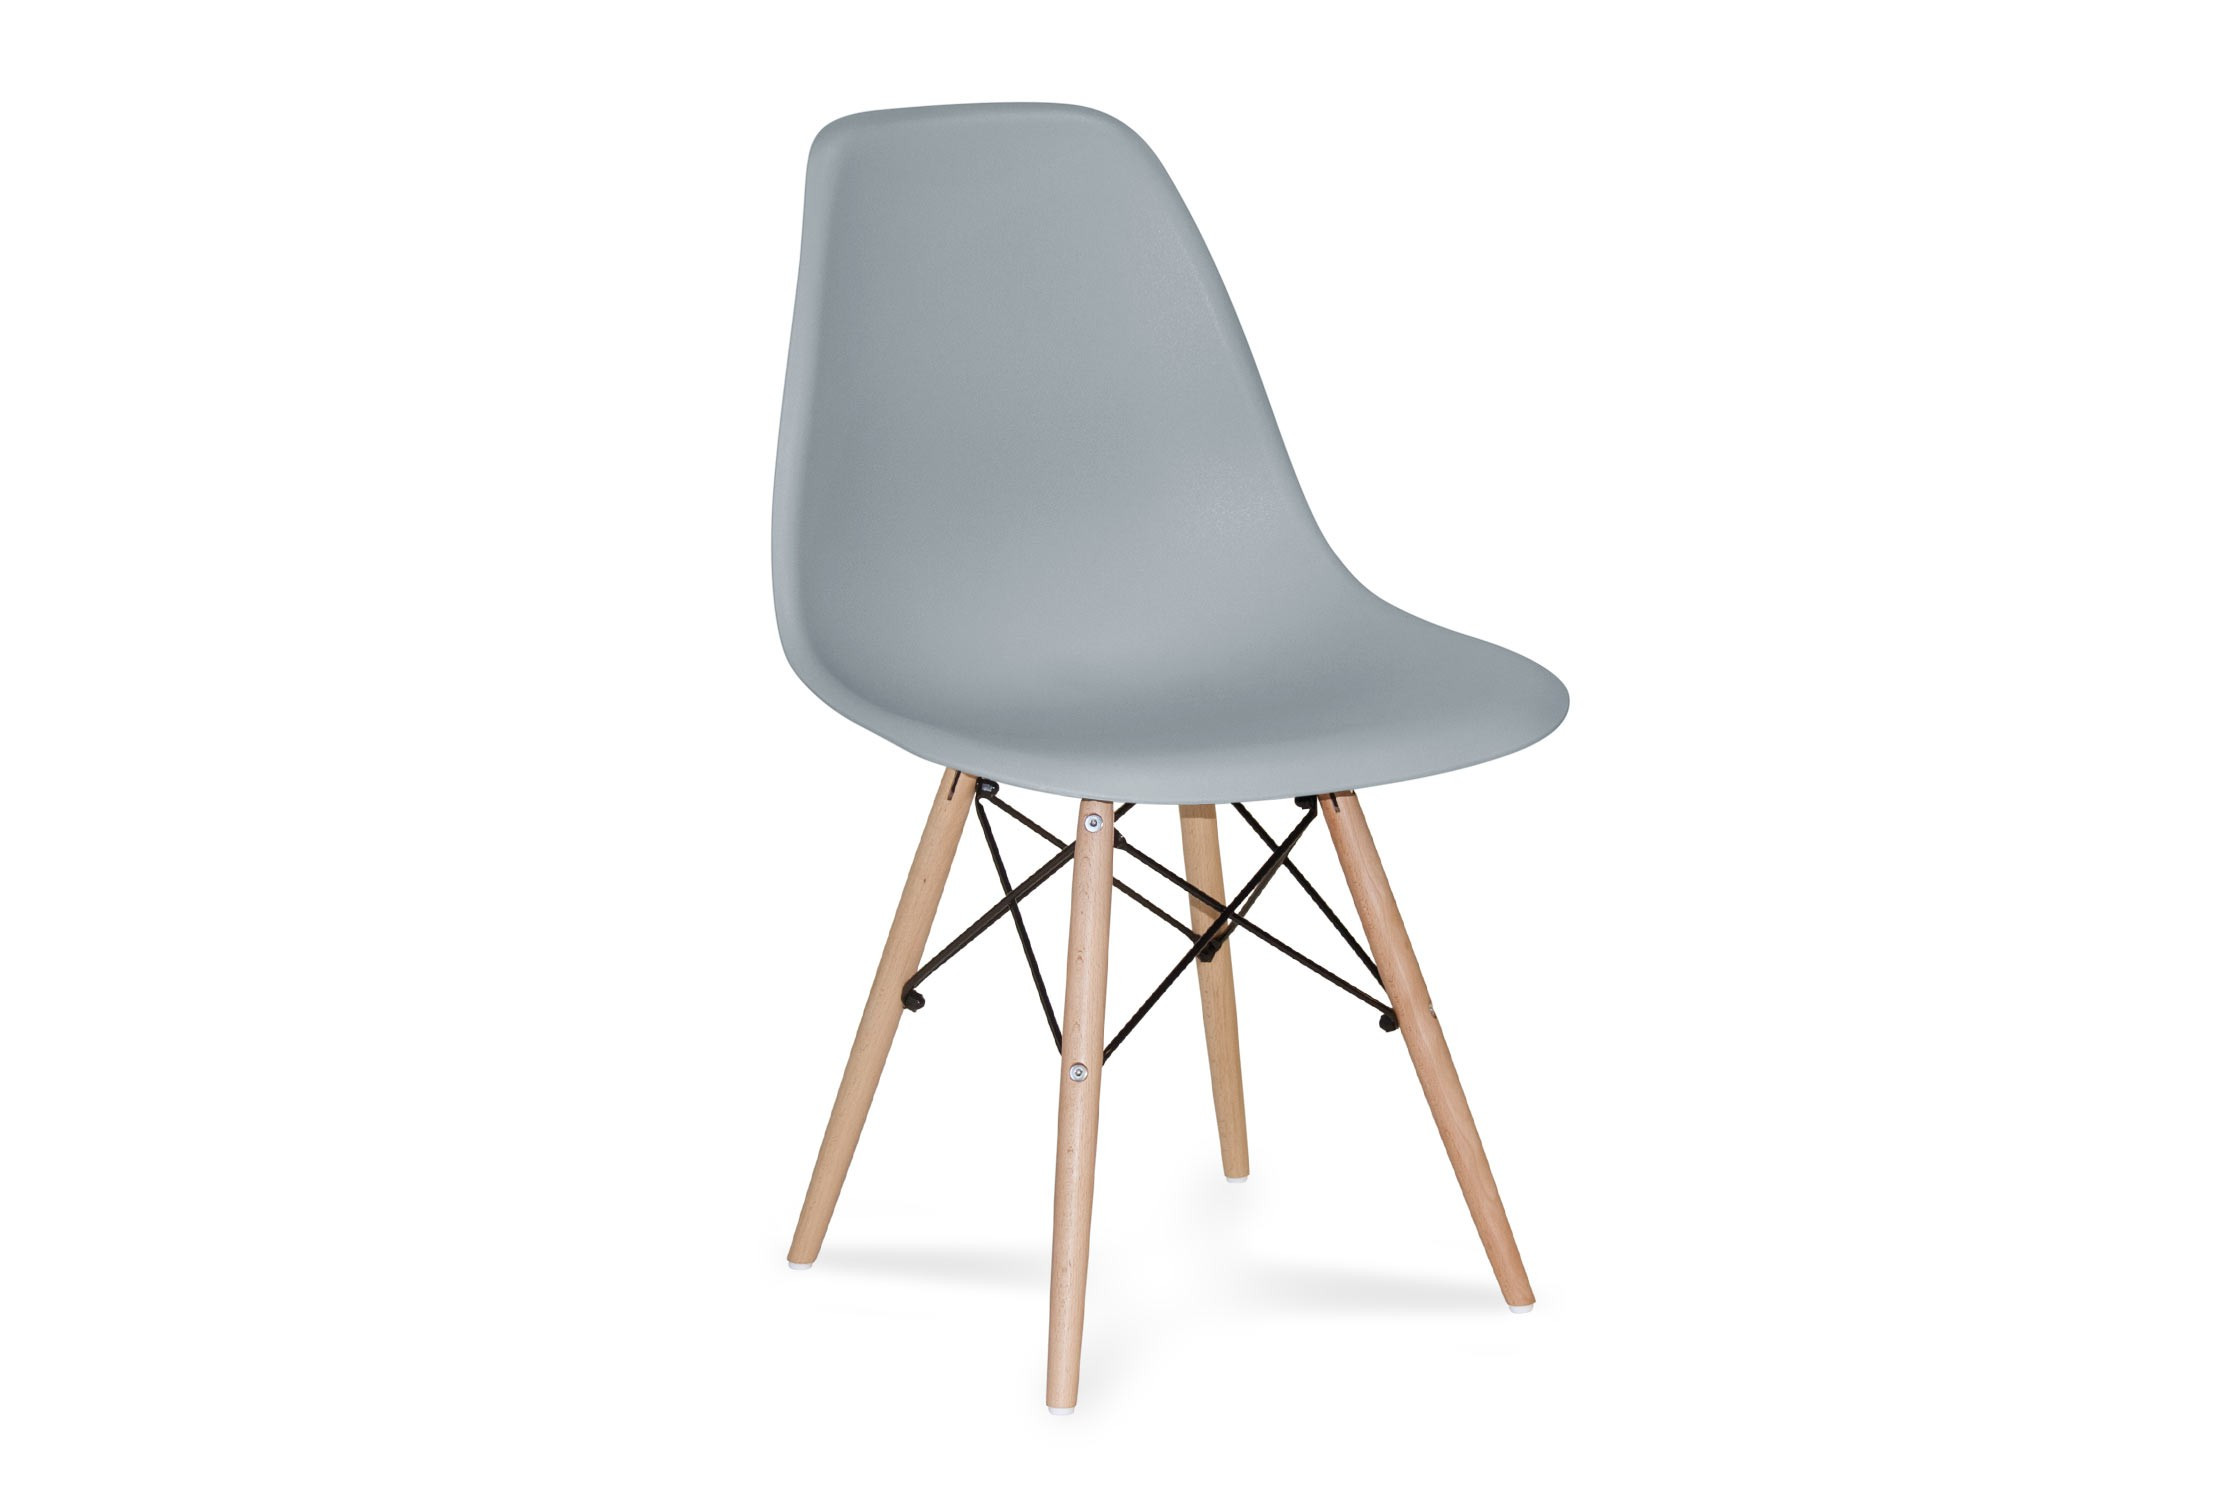 SILLA TOWER WOOD GRIS EXTRA QUALITY